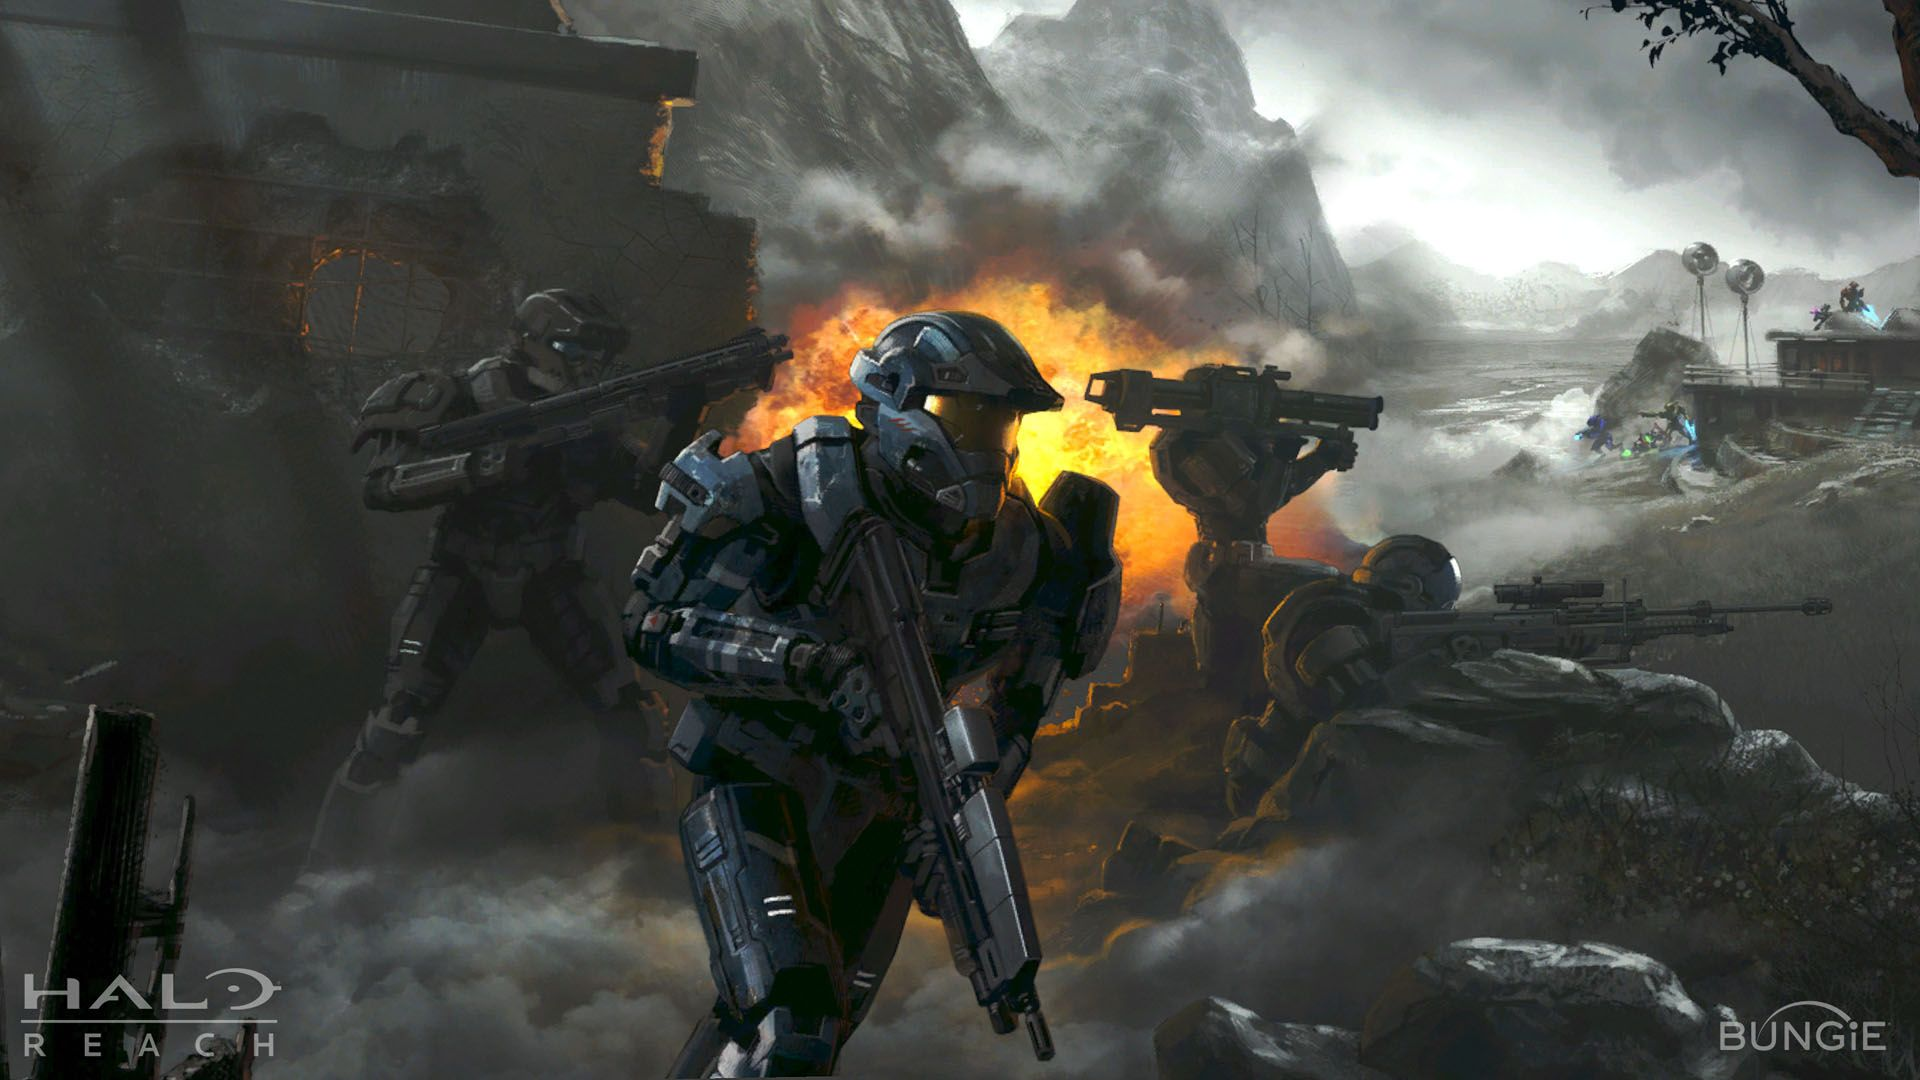 Halo Reach Concept Art 1920x1080 Halo Reach Halo Spartan Halo Series